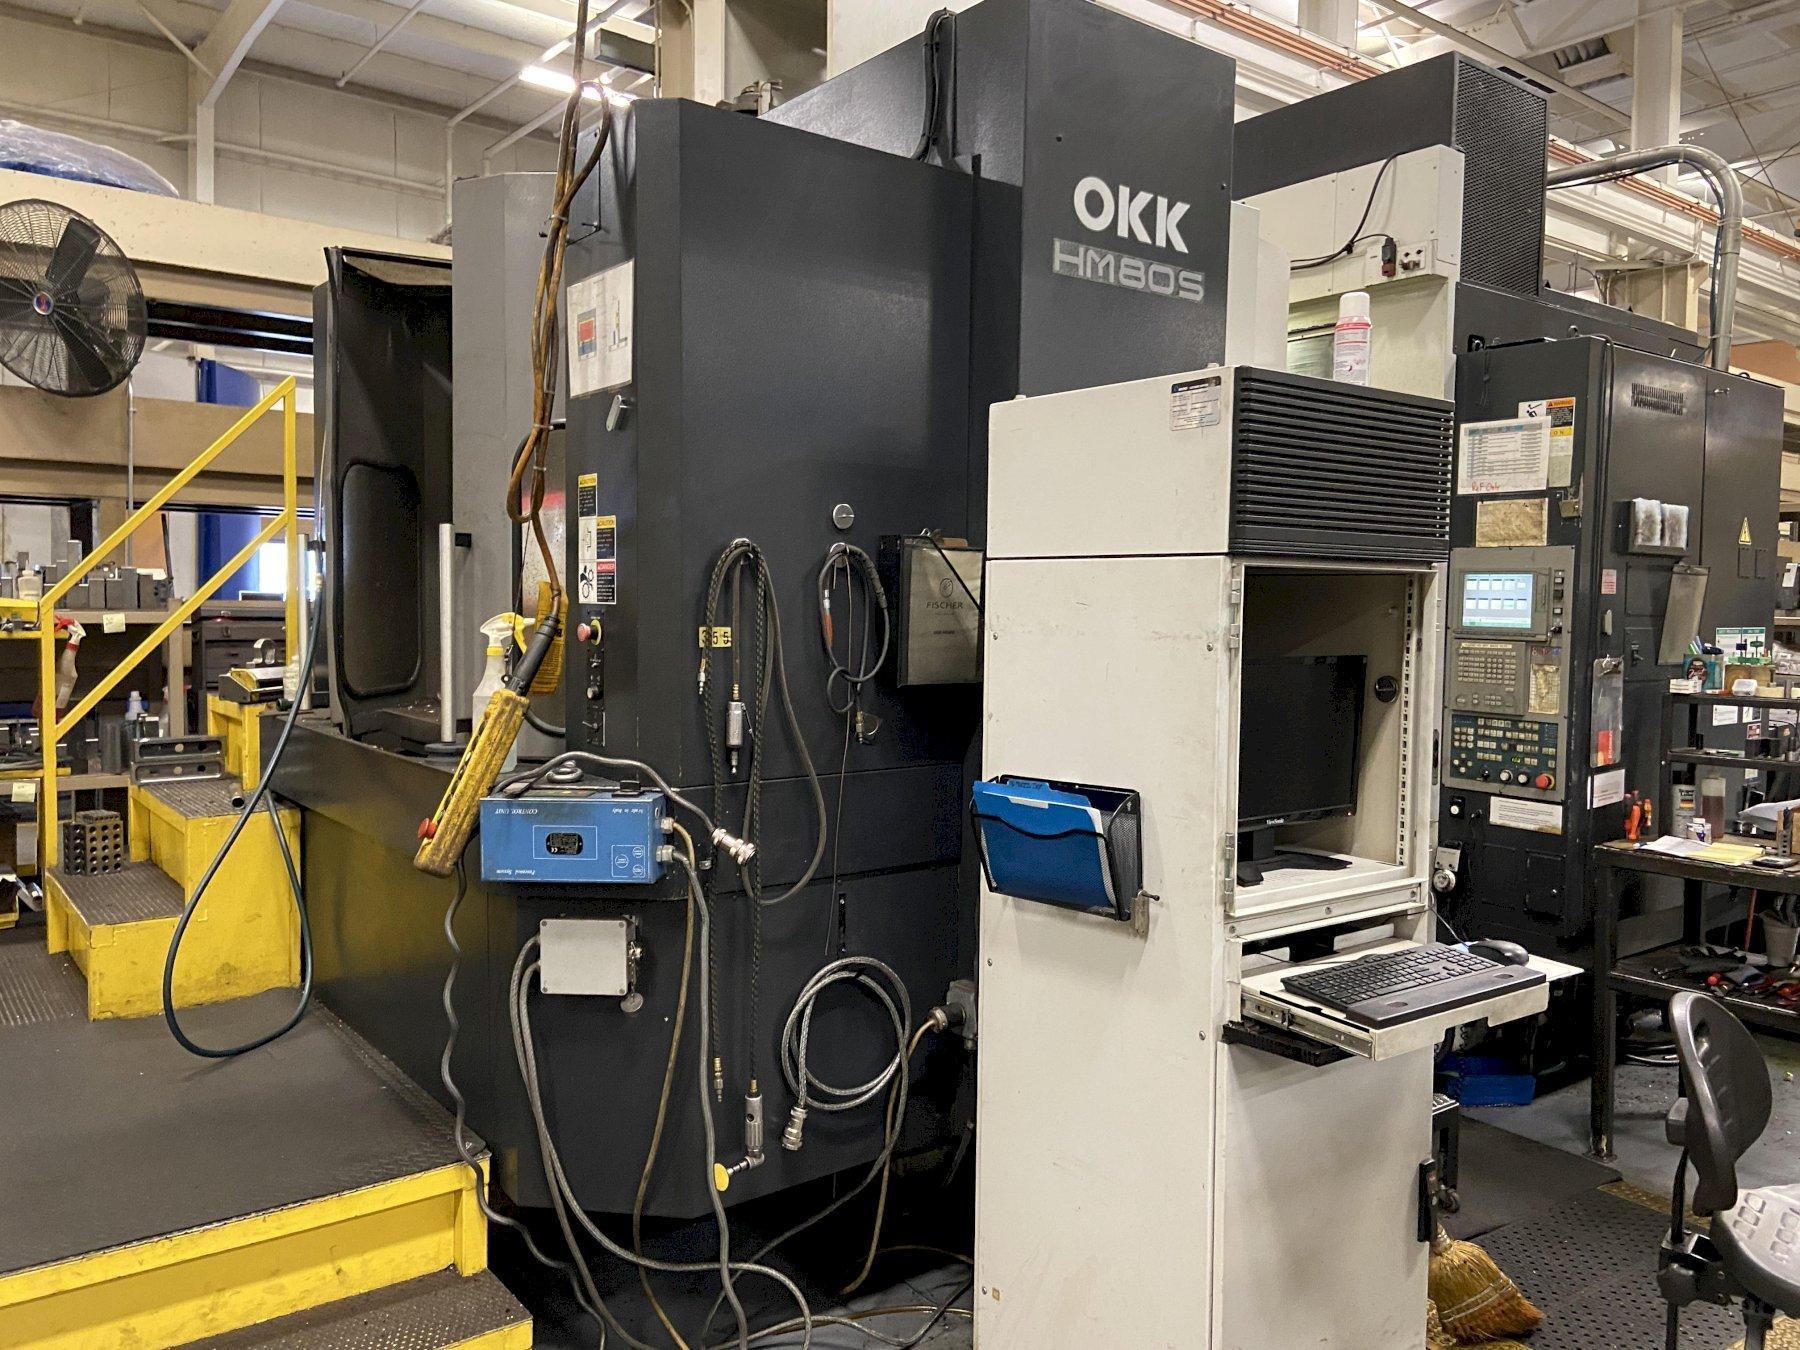 OKK HM80S CNC Horizontal Machining Center, Meldas 600, 31.5